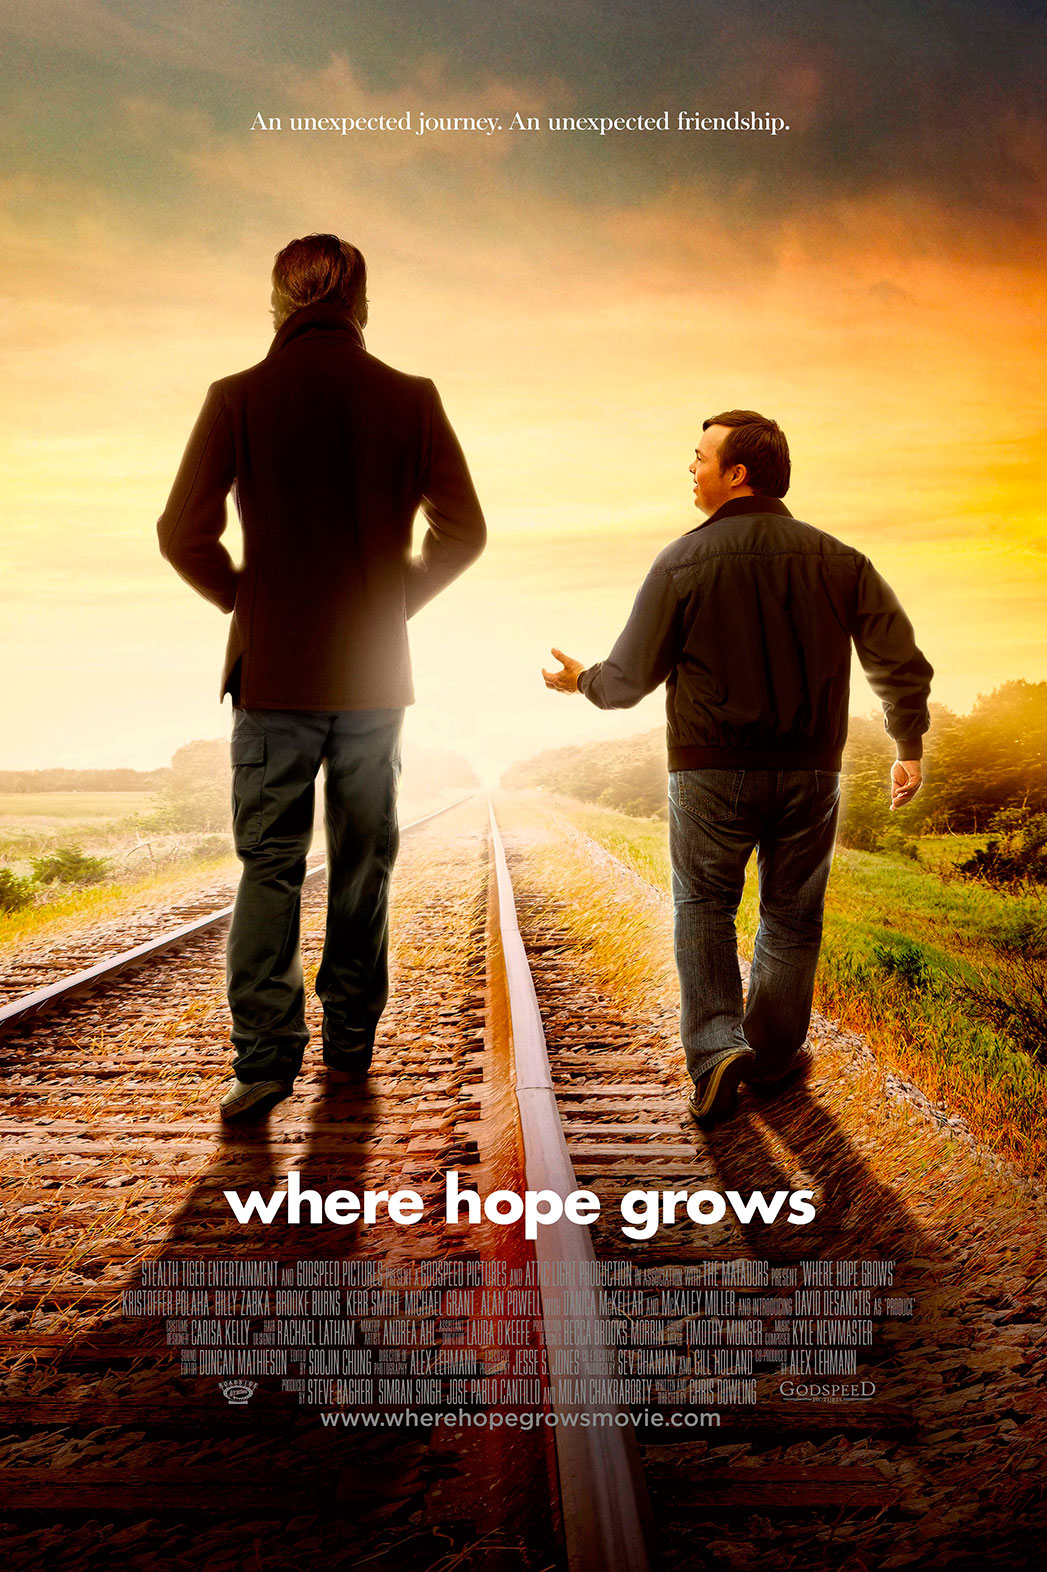 Where Hope Grows Poster - P 2015